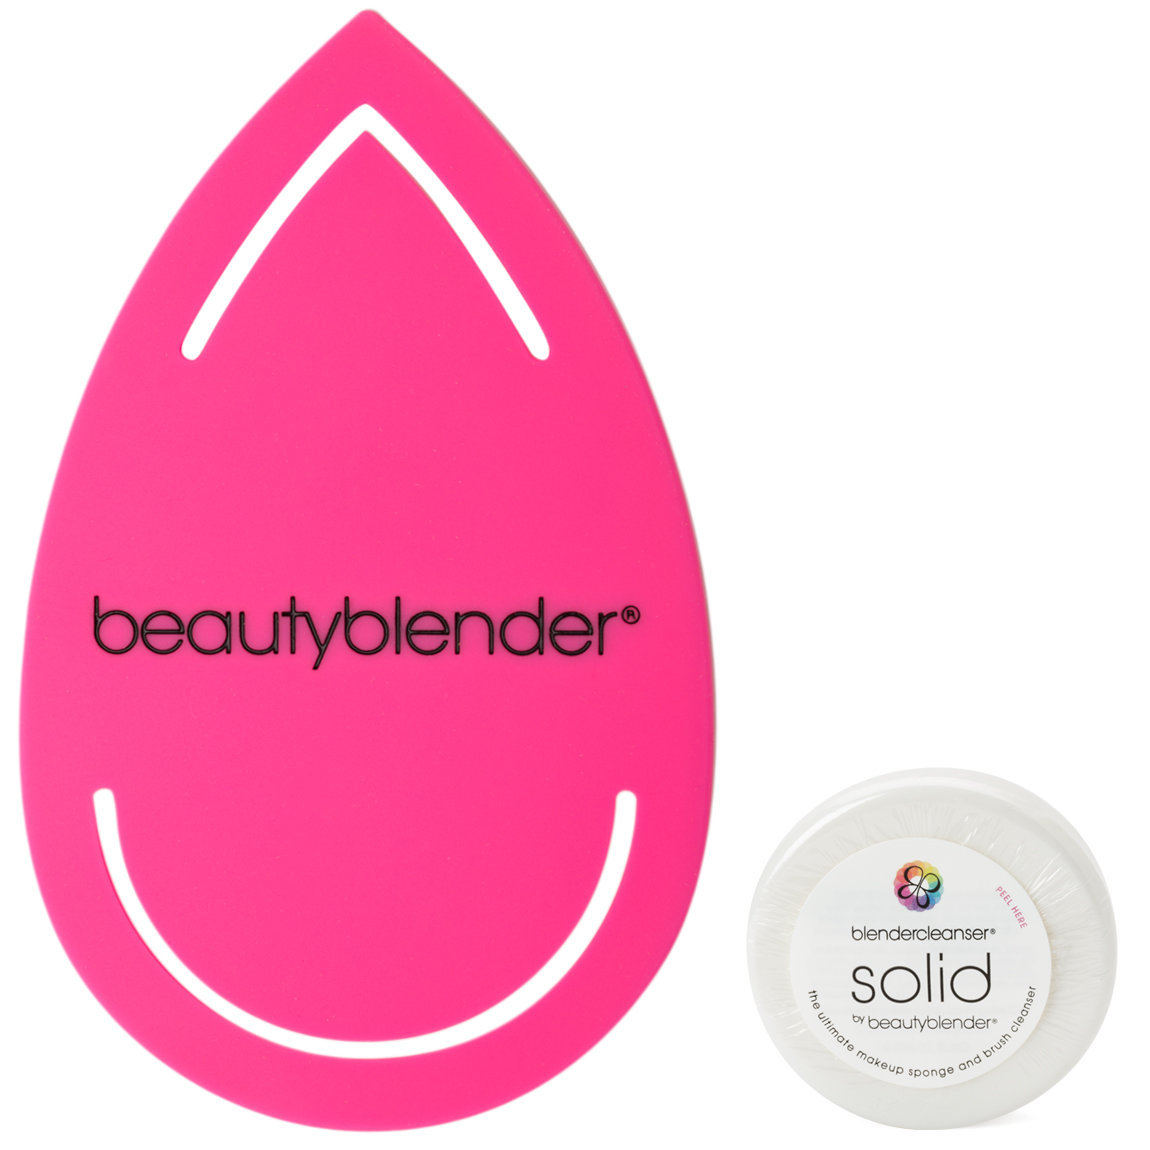 beautyblender keep.it.clean product swatch.